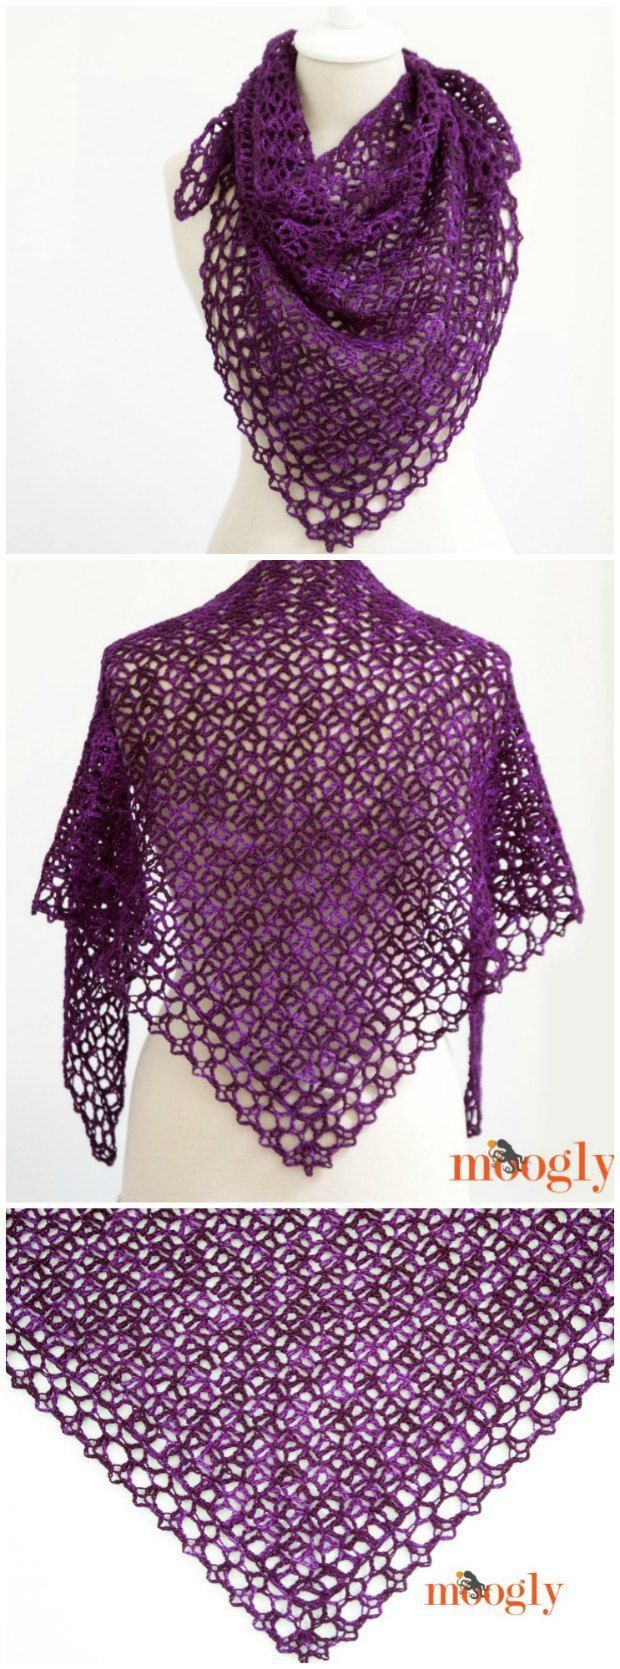 Free crochet pattern and video tutorial for how to make this gorgeous shawl.  You'll be amazed, but it's actually very simple! (yarns video tutorials)